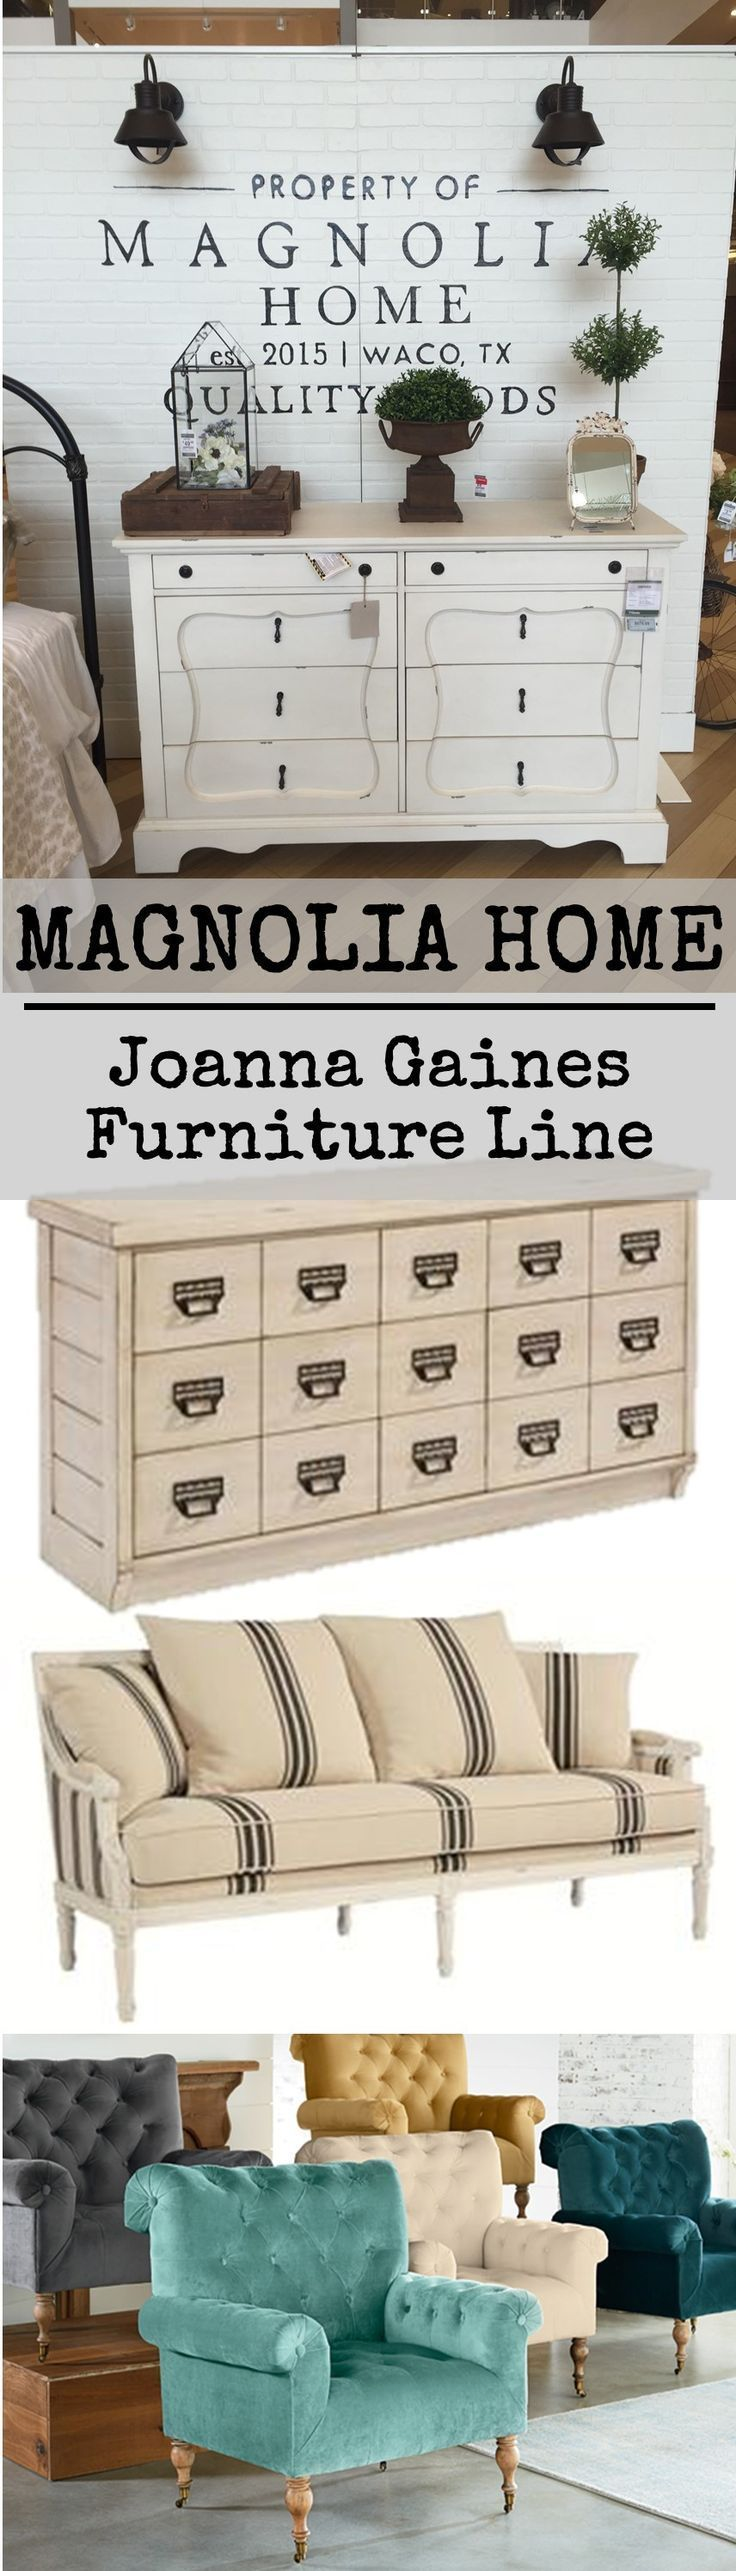 On My Recent Shopping Trip I Checked Out Joanna Gaines New Furniture Line Magnolia Home It Di Magnolia Home Decor Joanna Gaines Furniture Joanna Gaines House